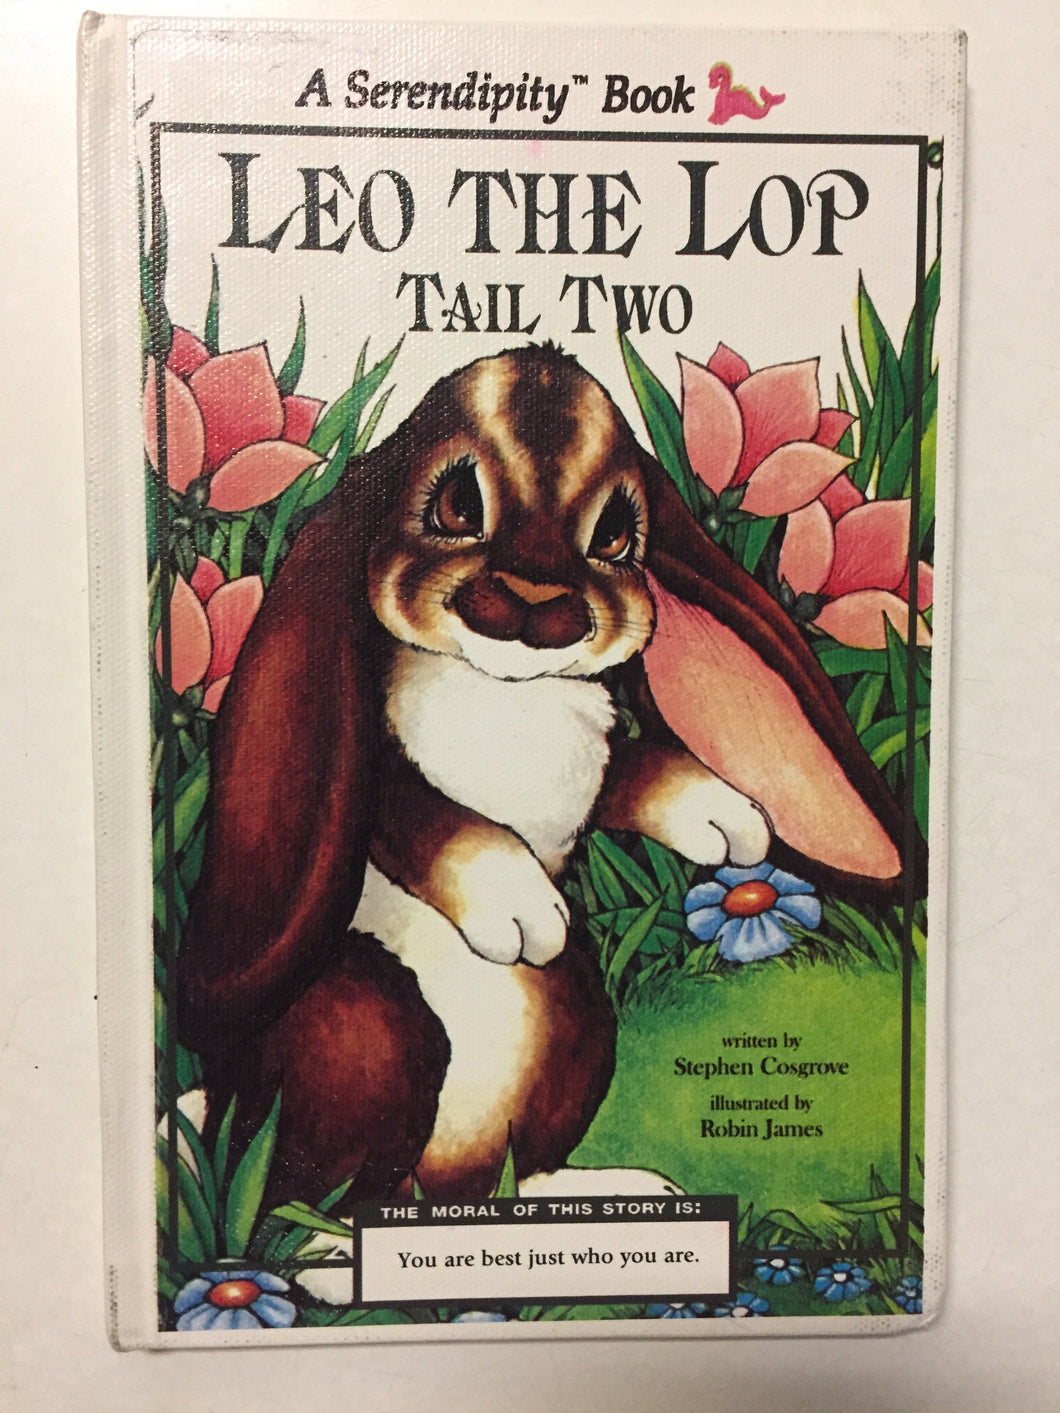 Leo the Lop Tail Two - Slickcatbooks